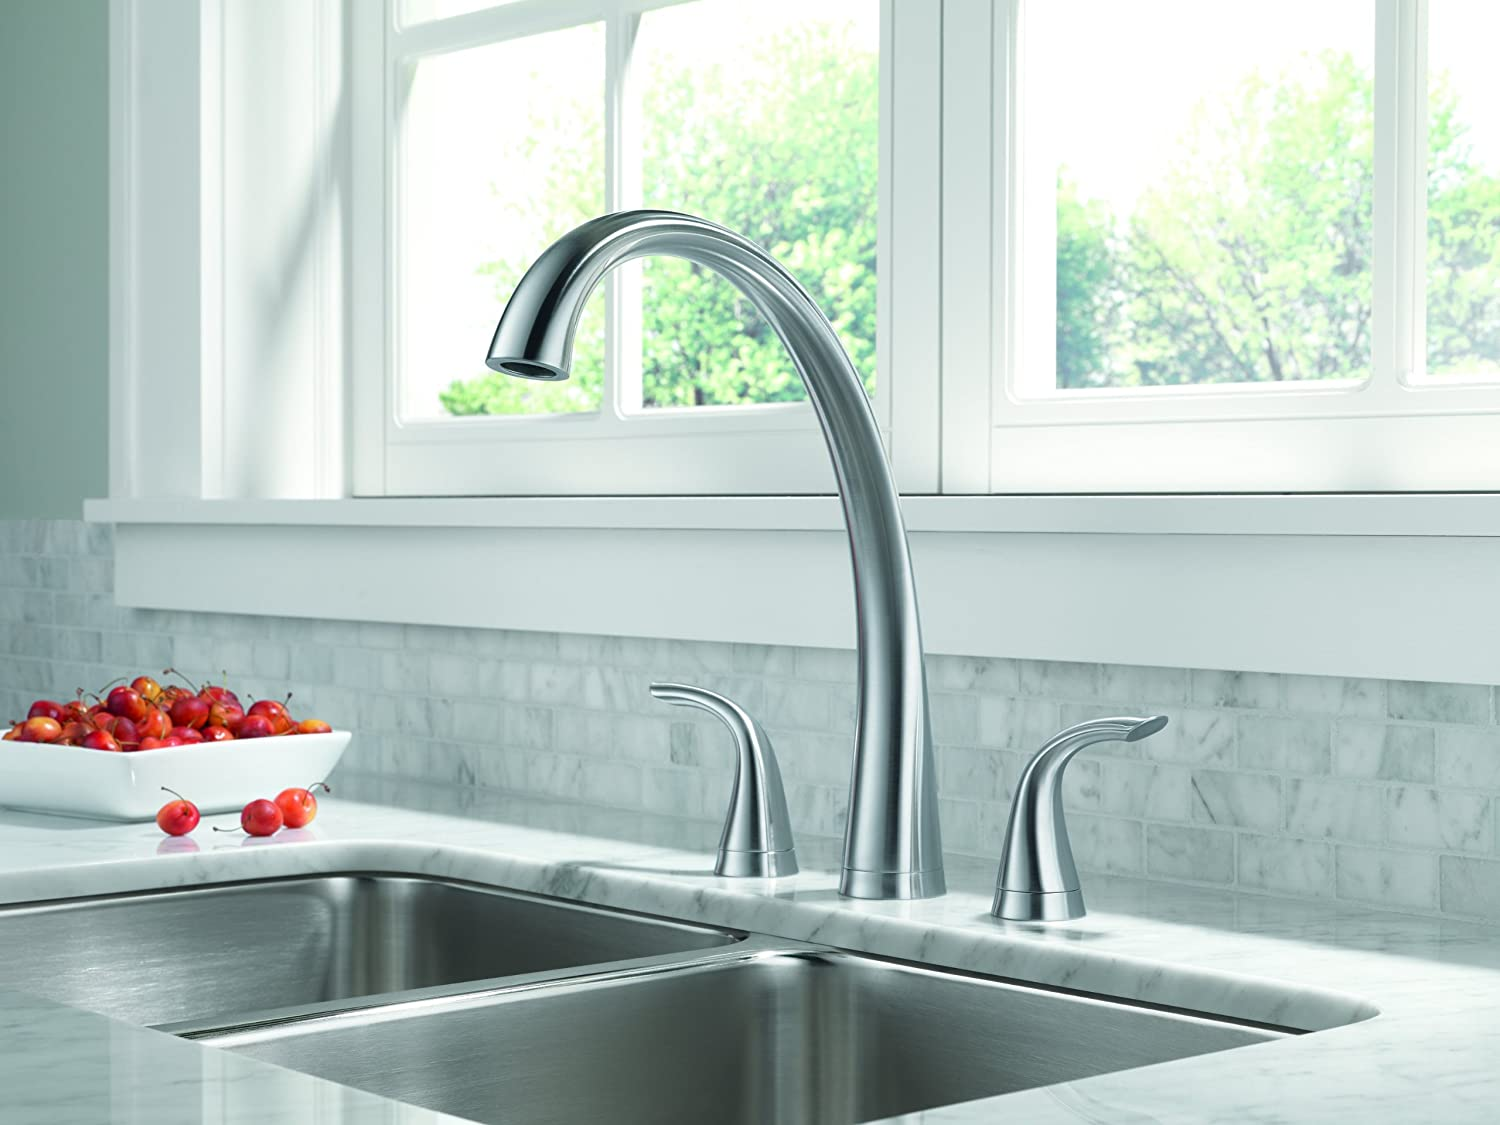 BMA widespread kitchen faucet Delta Faucet DST Pillar Two Handle Widespread Kitchen Faucet with Spray Chrome Touch On Kitchen Sink Faucets Amazon com